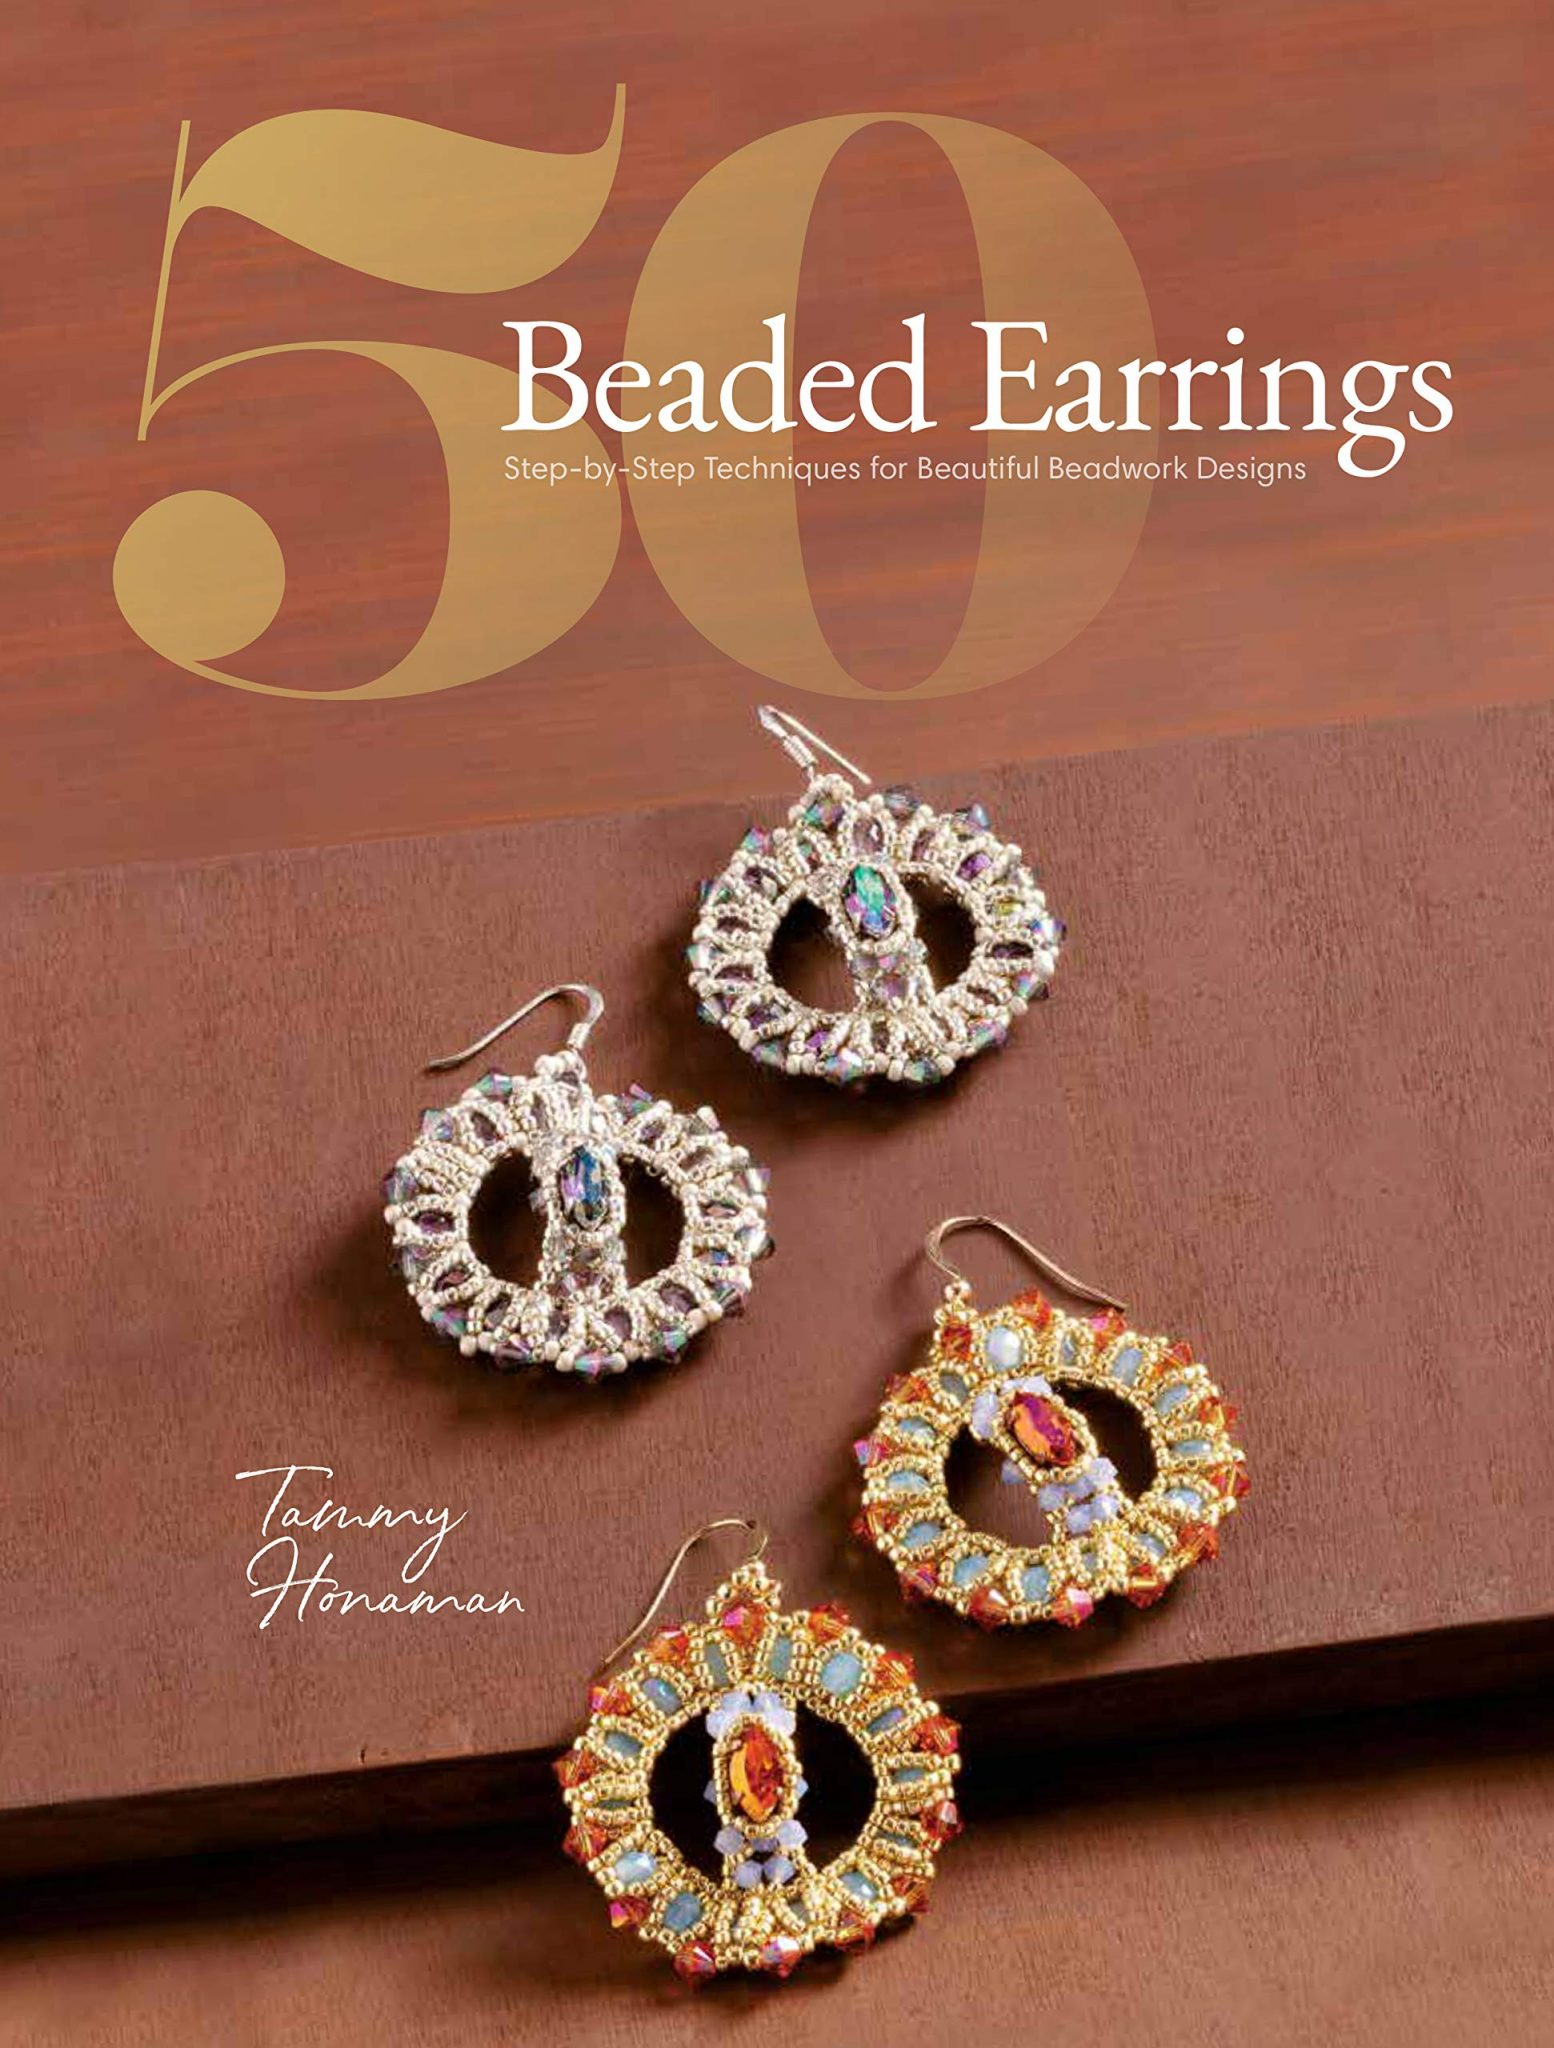 50 BEADED EARRINGS Step-by-Step Techniques for Beautiful Beadwork Designs by Tammy Honaman